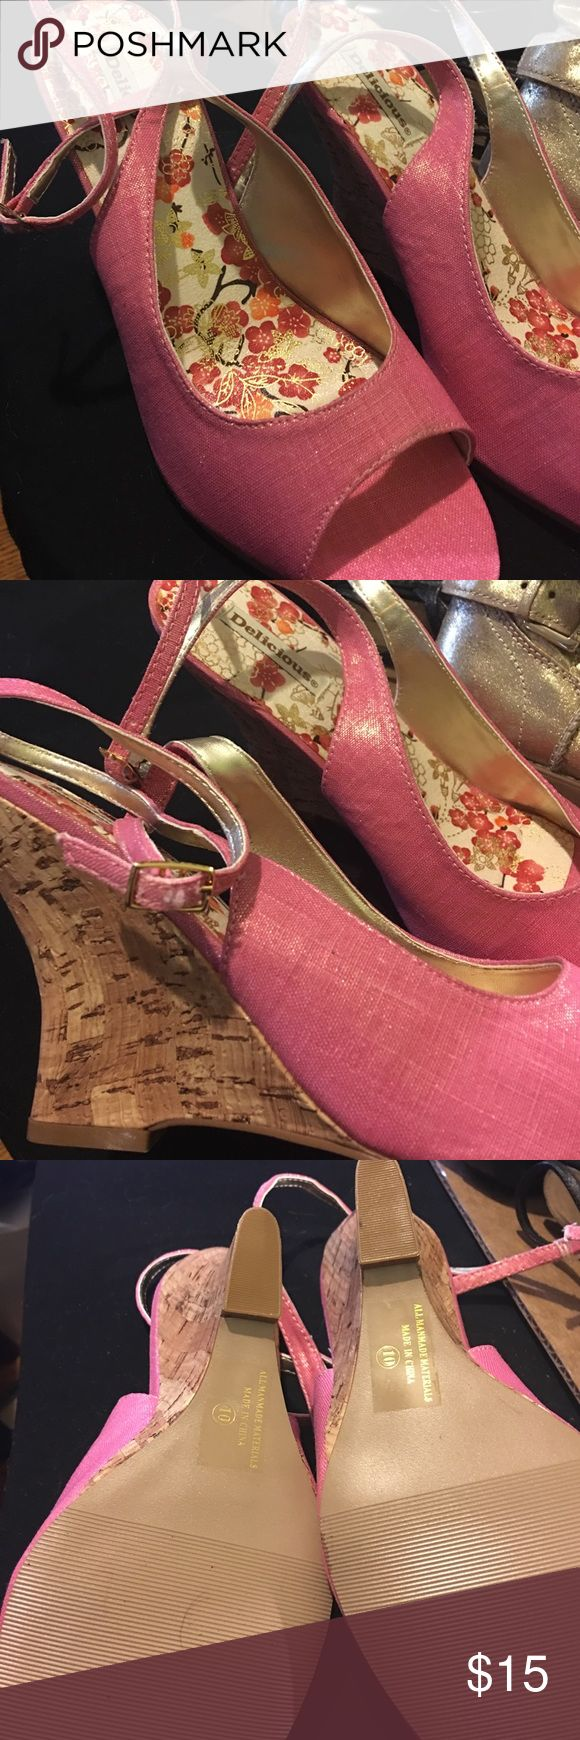 Delicious pink wedges, size 10 Very elegant and comfortable wedges. Never wore them because I mistakenly bought a 10 size and I'm 9 Delicious Shoes Wedges